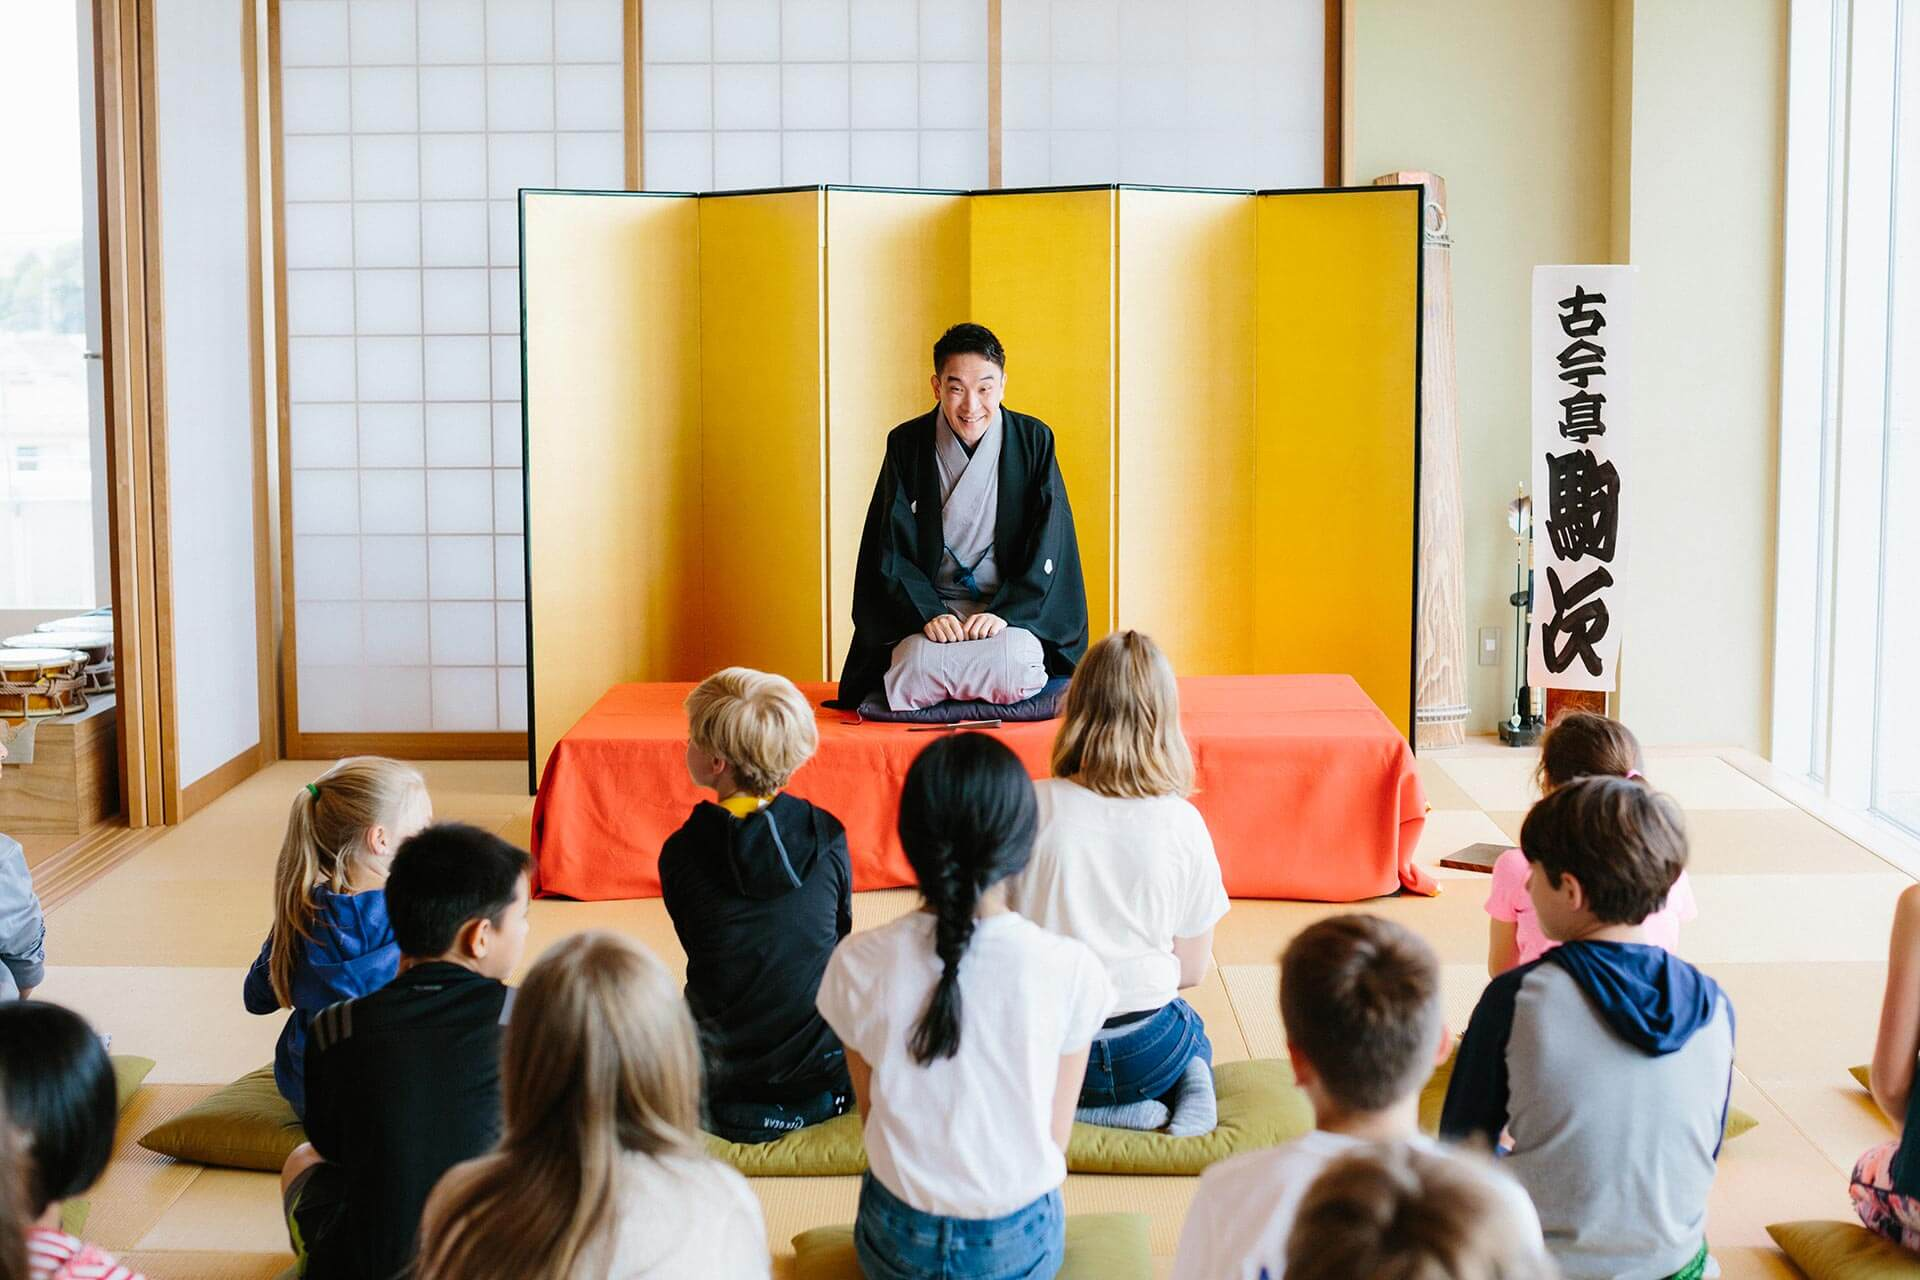 A Rakugo Professional Performs for Elementary School Students in the Japan Center